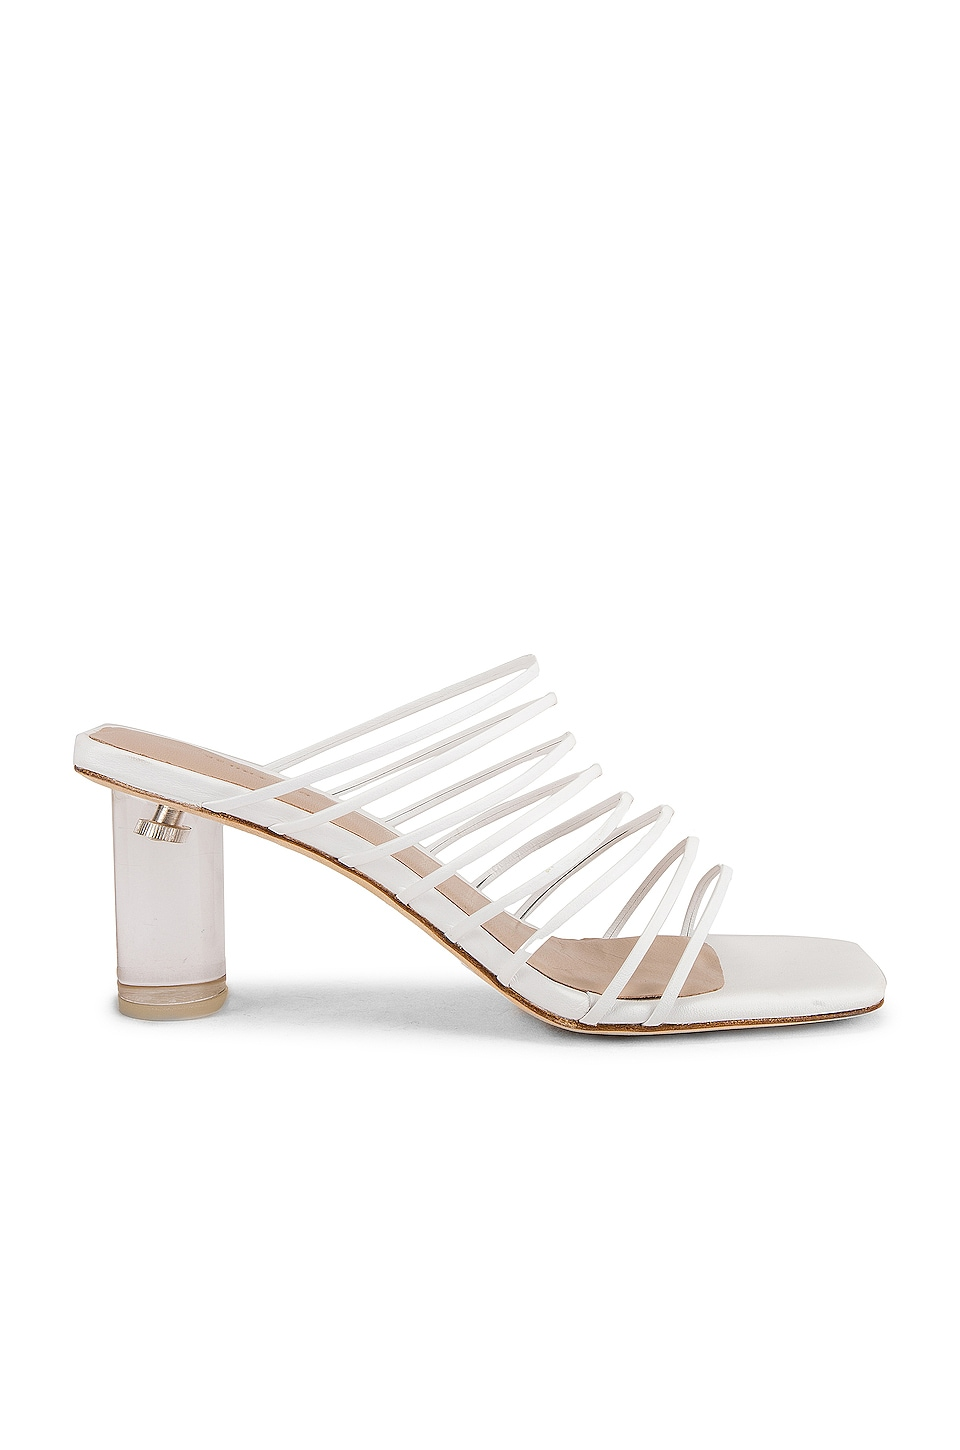 REJINA PYO Zoe Sandal in Leather White